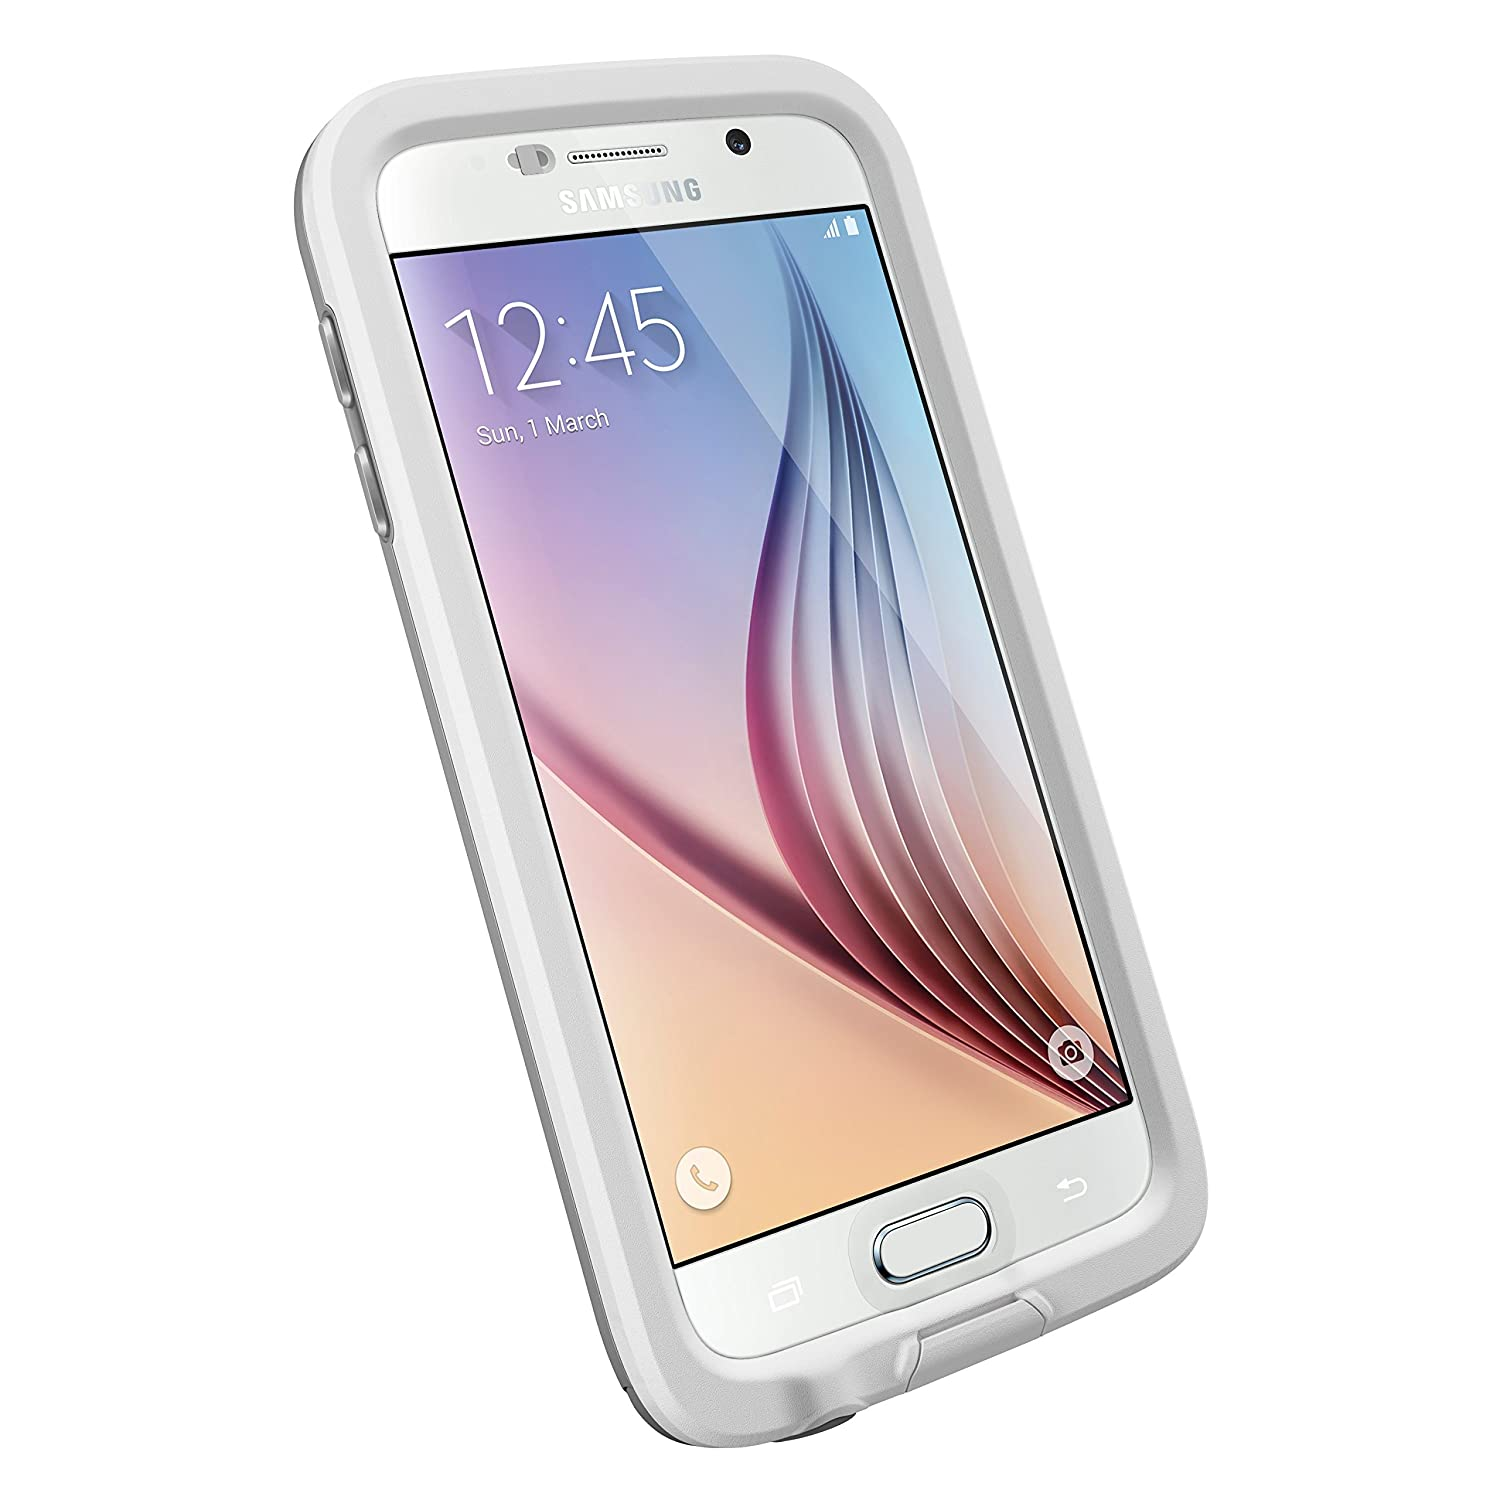 Amazon.com: LifeProof FRE Samsung Galaxy S6 Waterproof Case - Retail Packaging AVALANCHE (WHITE/GREY): Cell Phones \u0026 Accessories